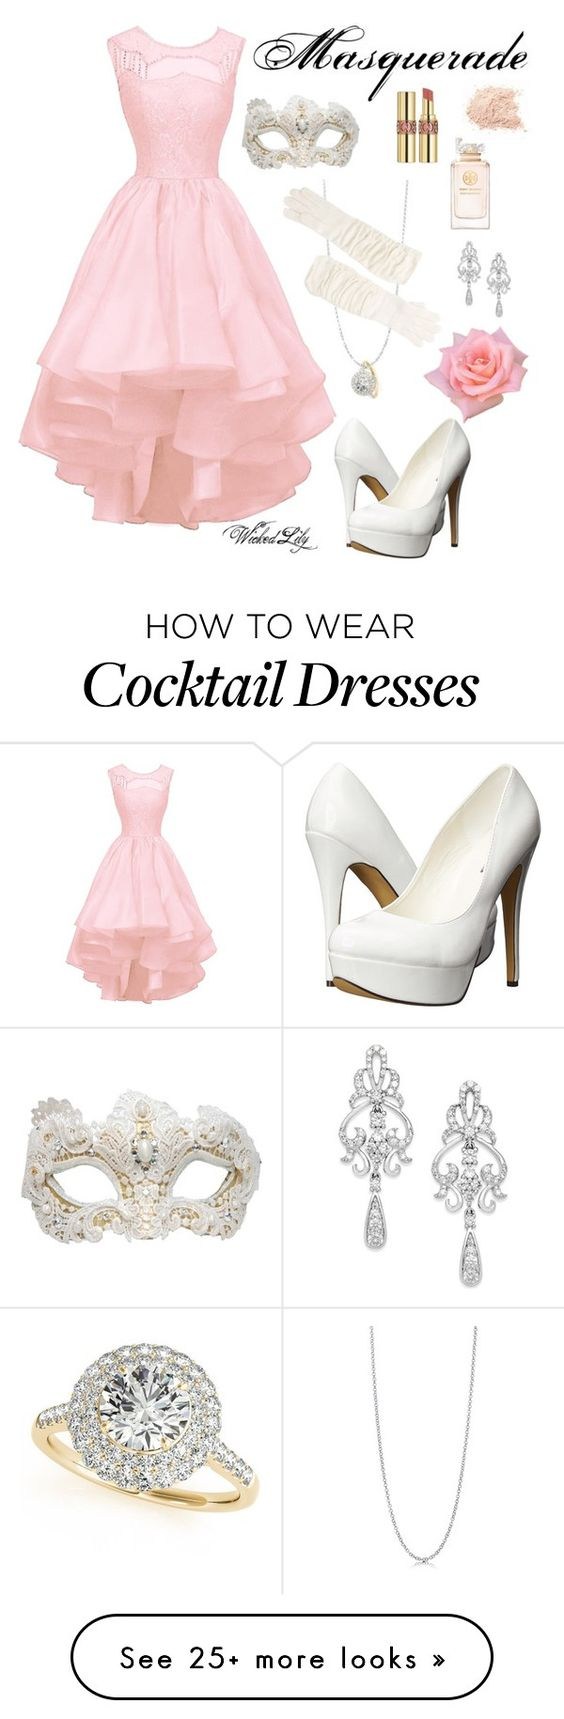 """""""Masquerade-Christine Daae from """"The Phantom of  the Opera"""""""" by le-piano-argent on Polyvore featuring Allurez, BERRICLE, Portolano, Swarovski, Michael Antonio, Yves Saint Laurent, Tory Burch, Wrapped In Love, women's clothing and women's fashion"""